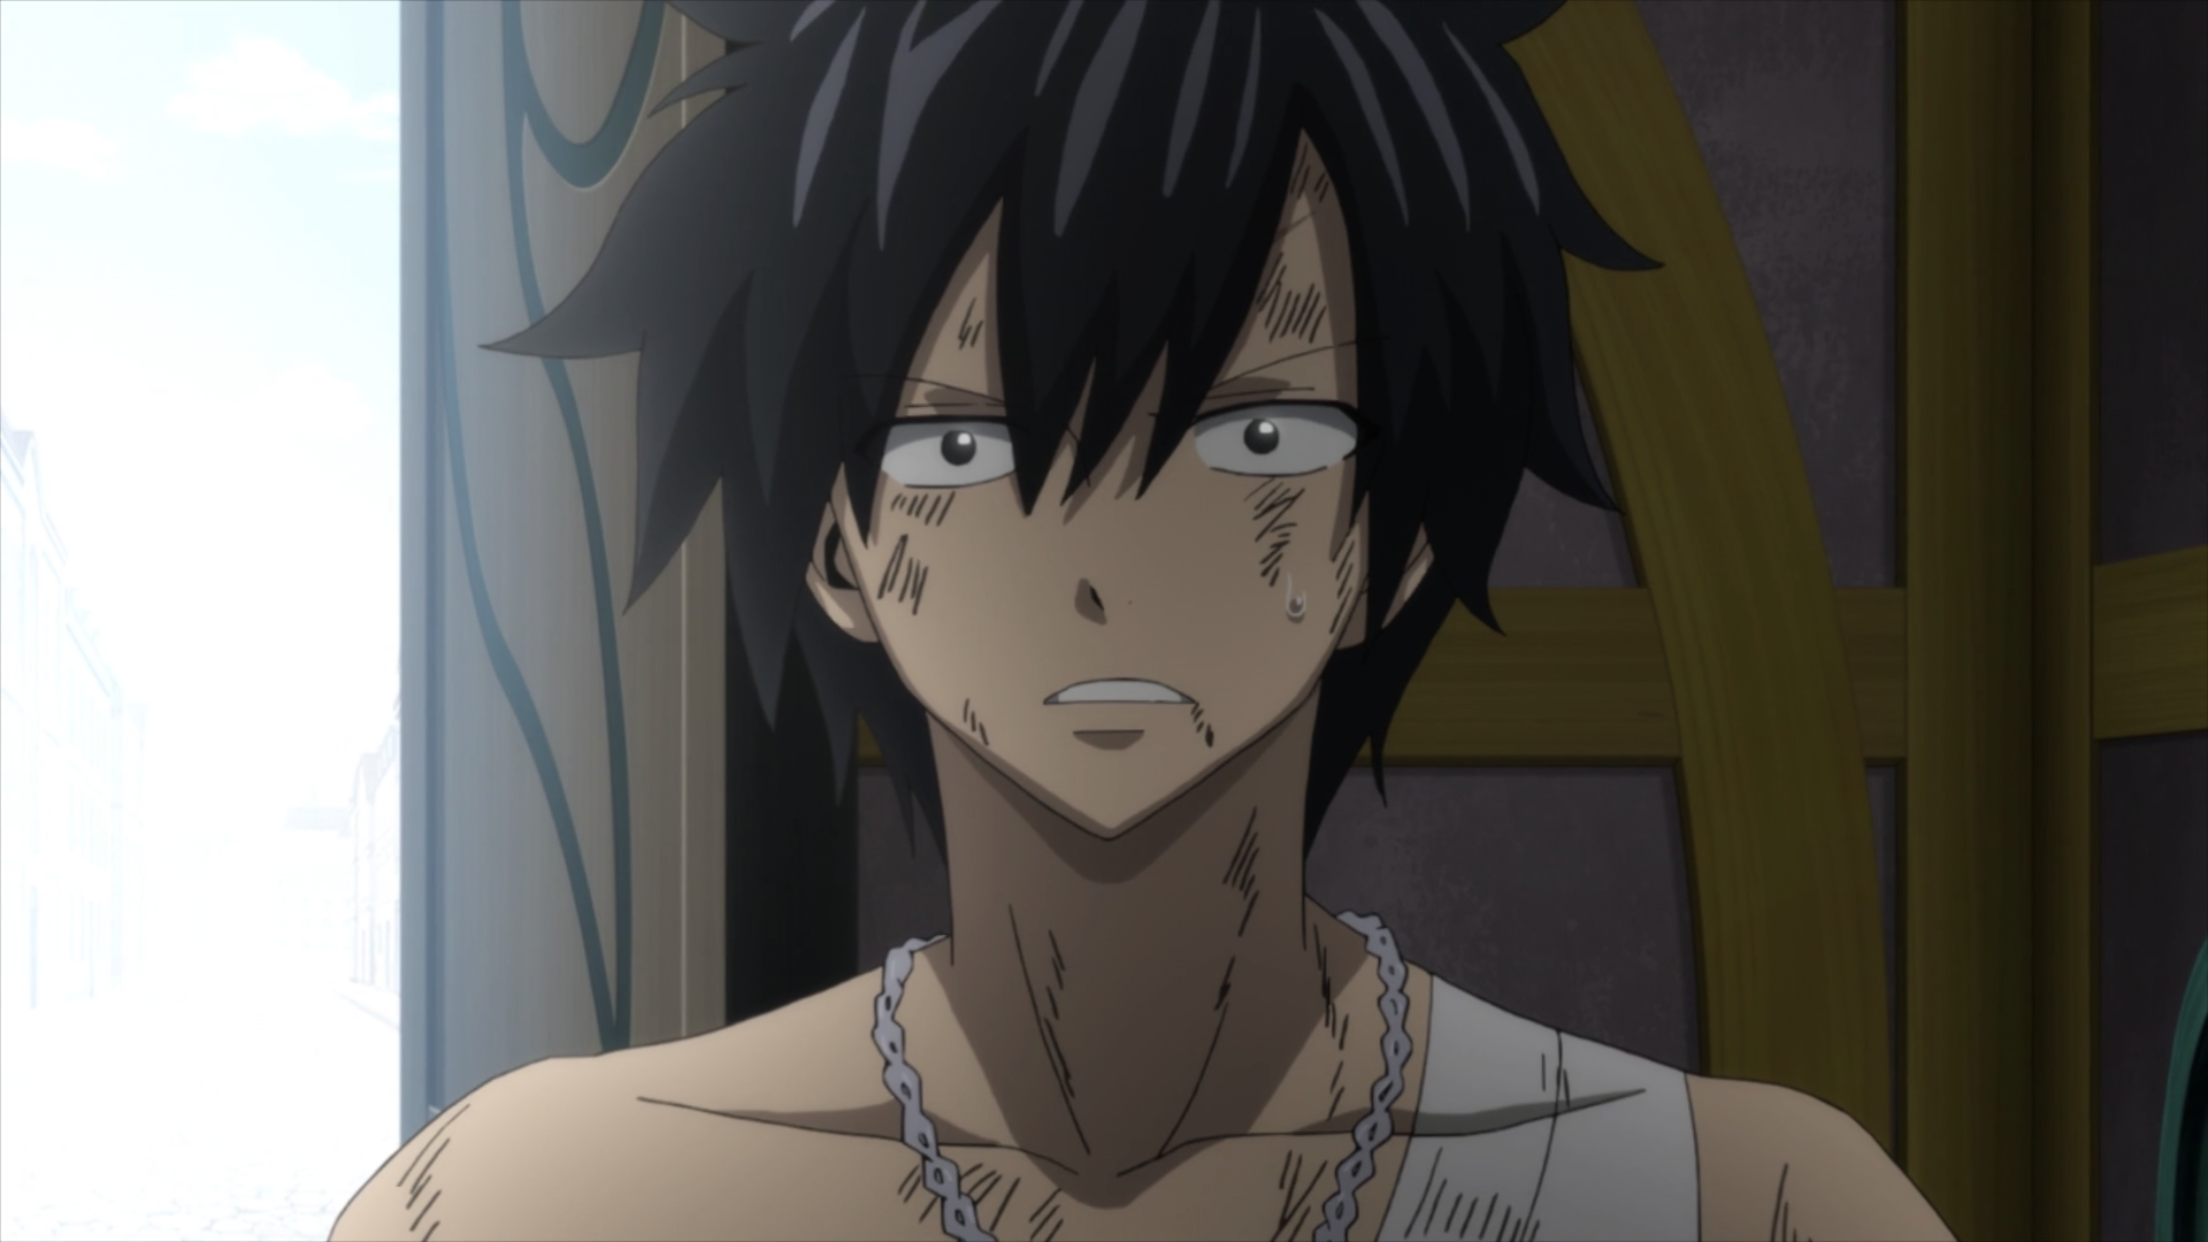 Fairy Tail 2018 Episode 39 Fairy tail images, Fairy tail